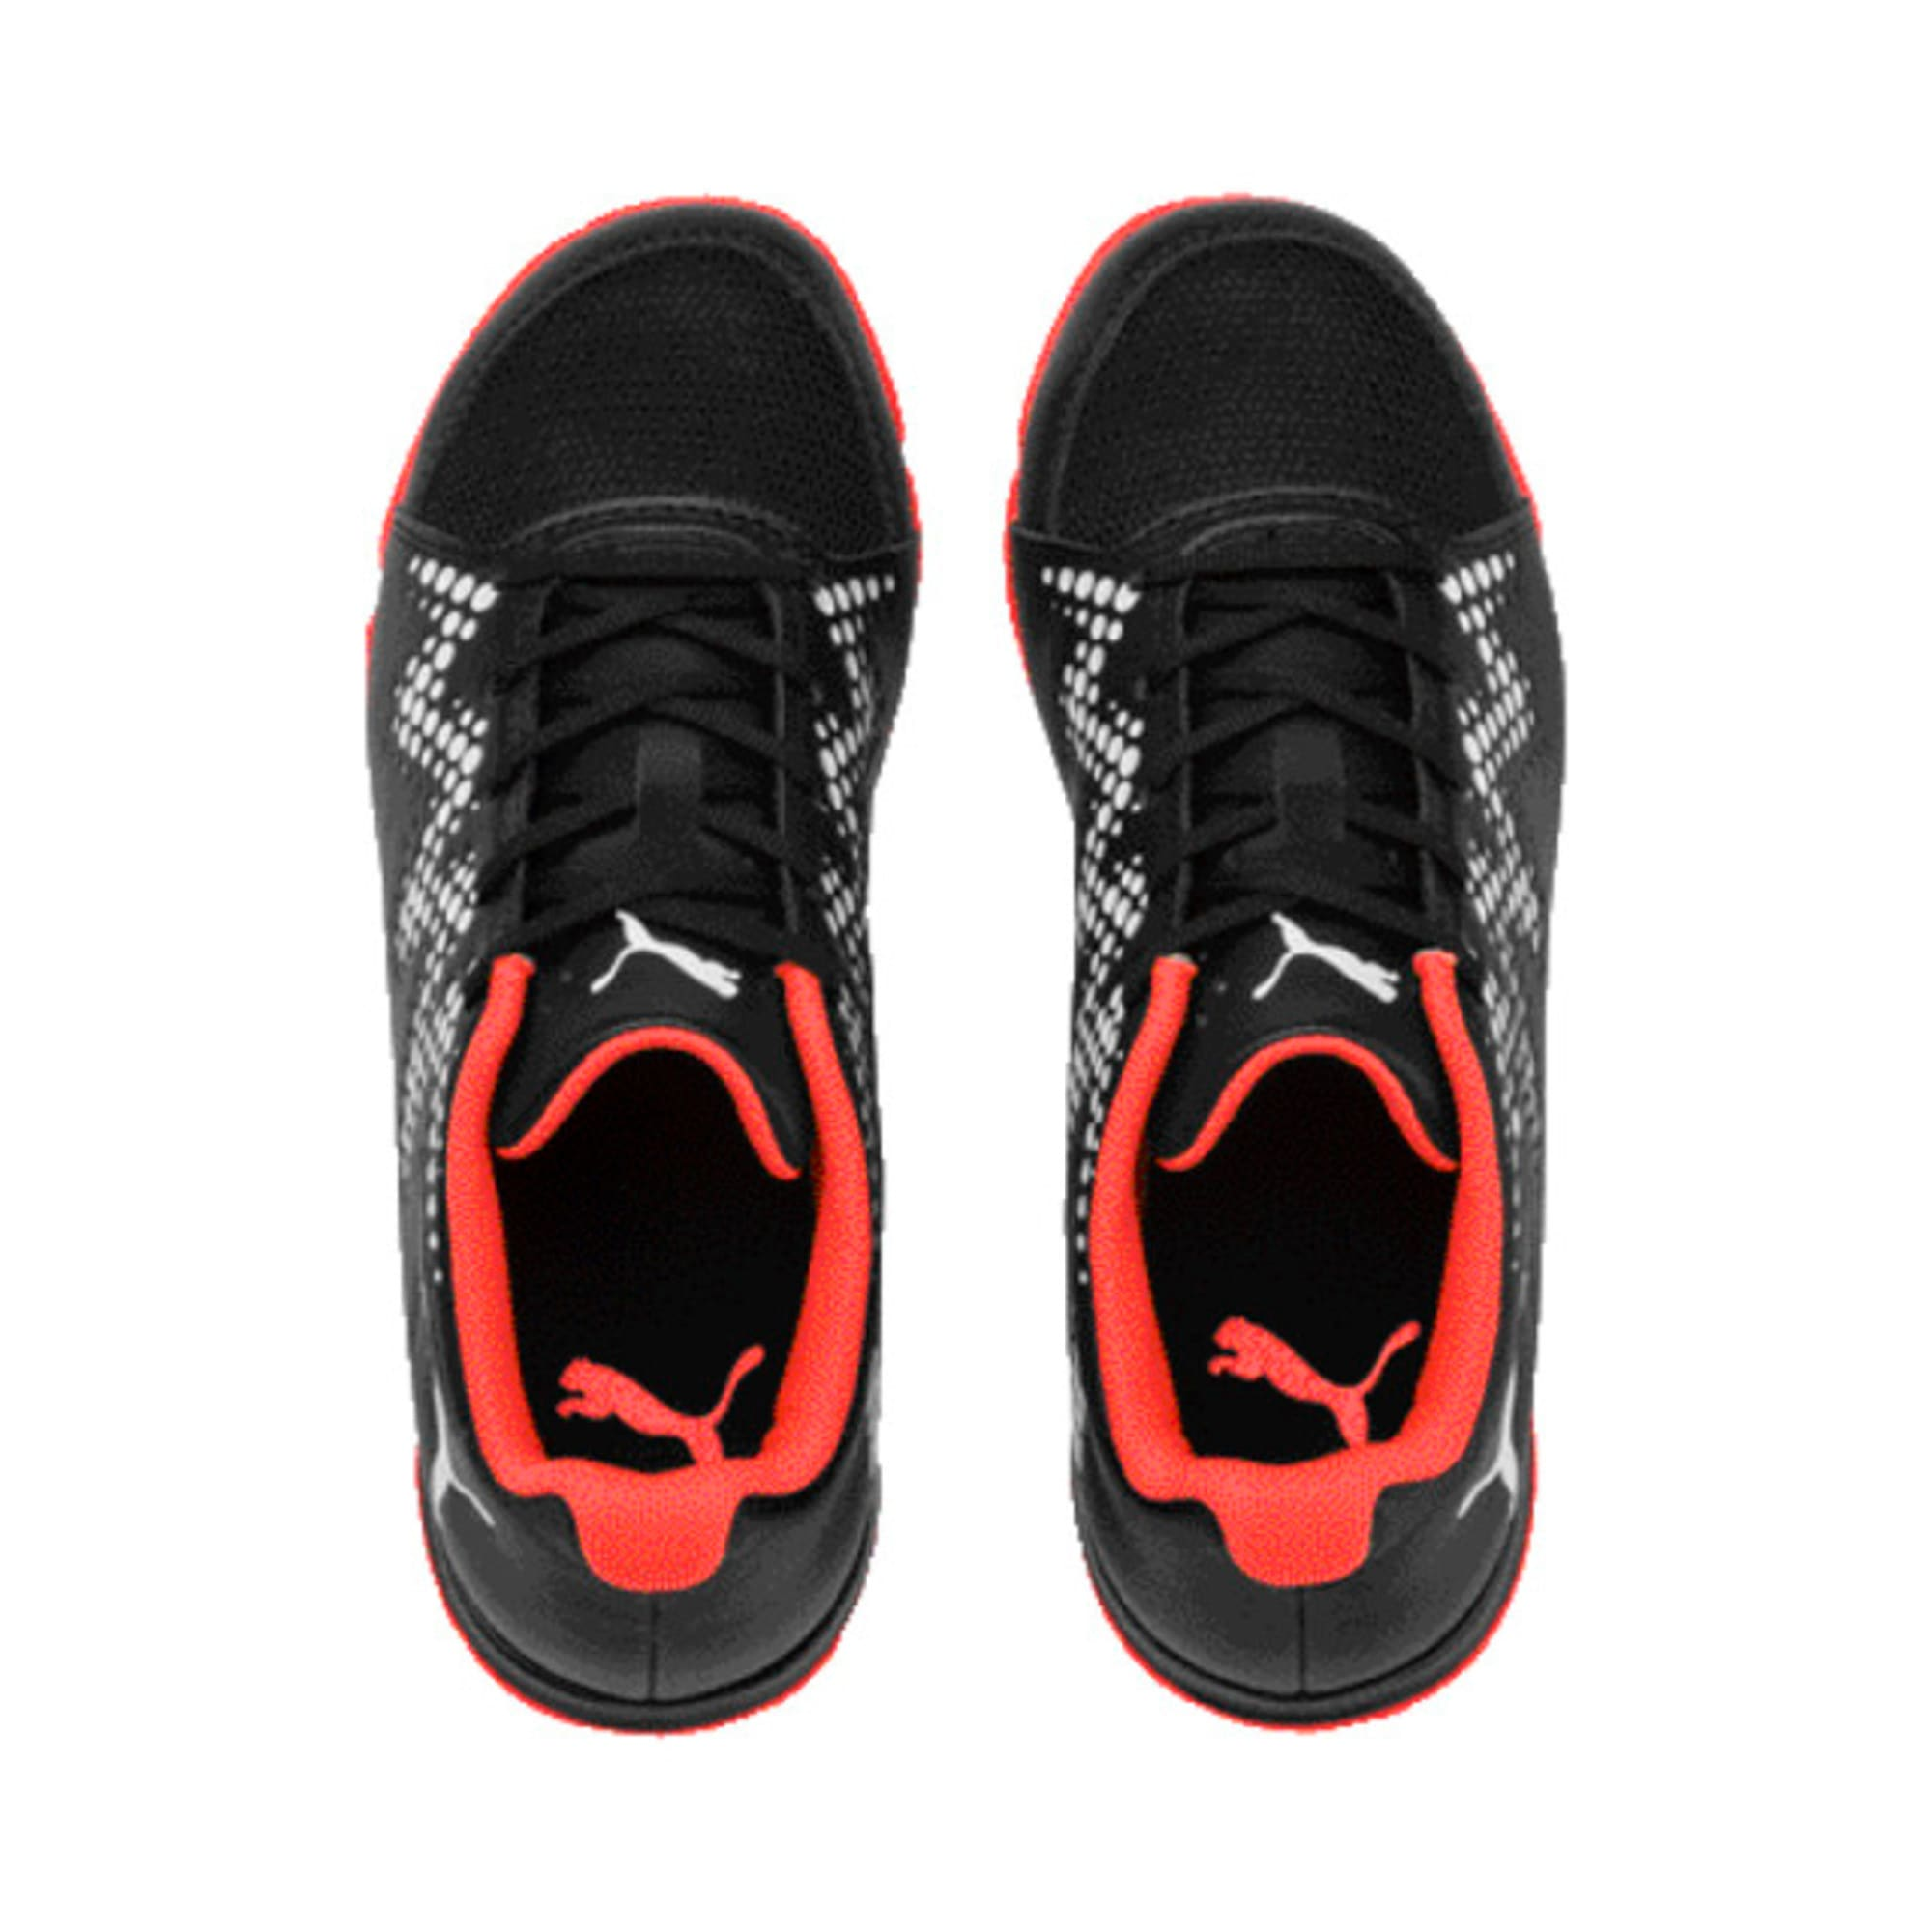 Thumbnail 2 of Sharp XT 2 Youth Trainers, Black-Puma White-Nrgy Red, medium-IND